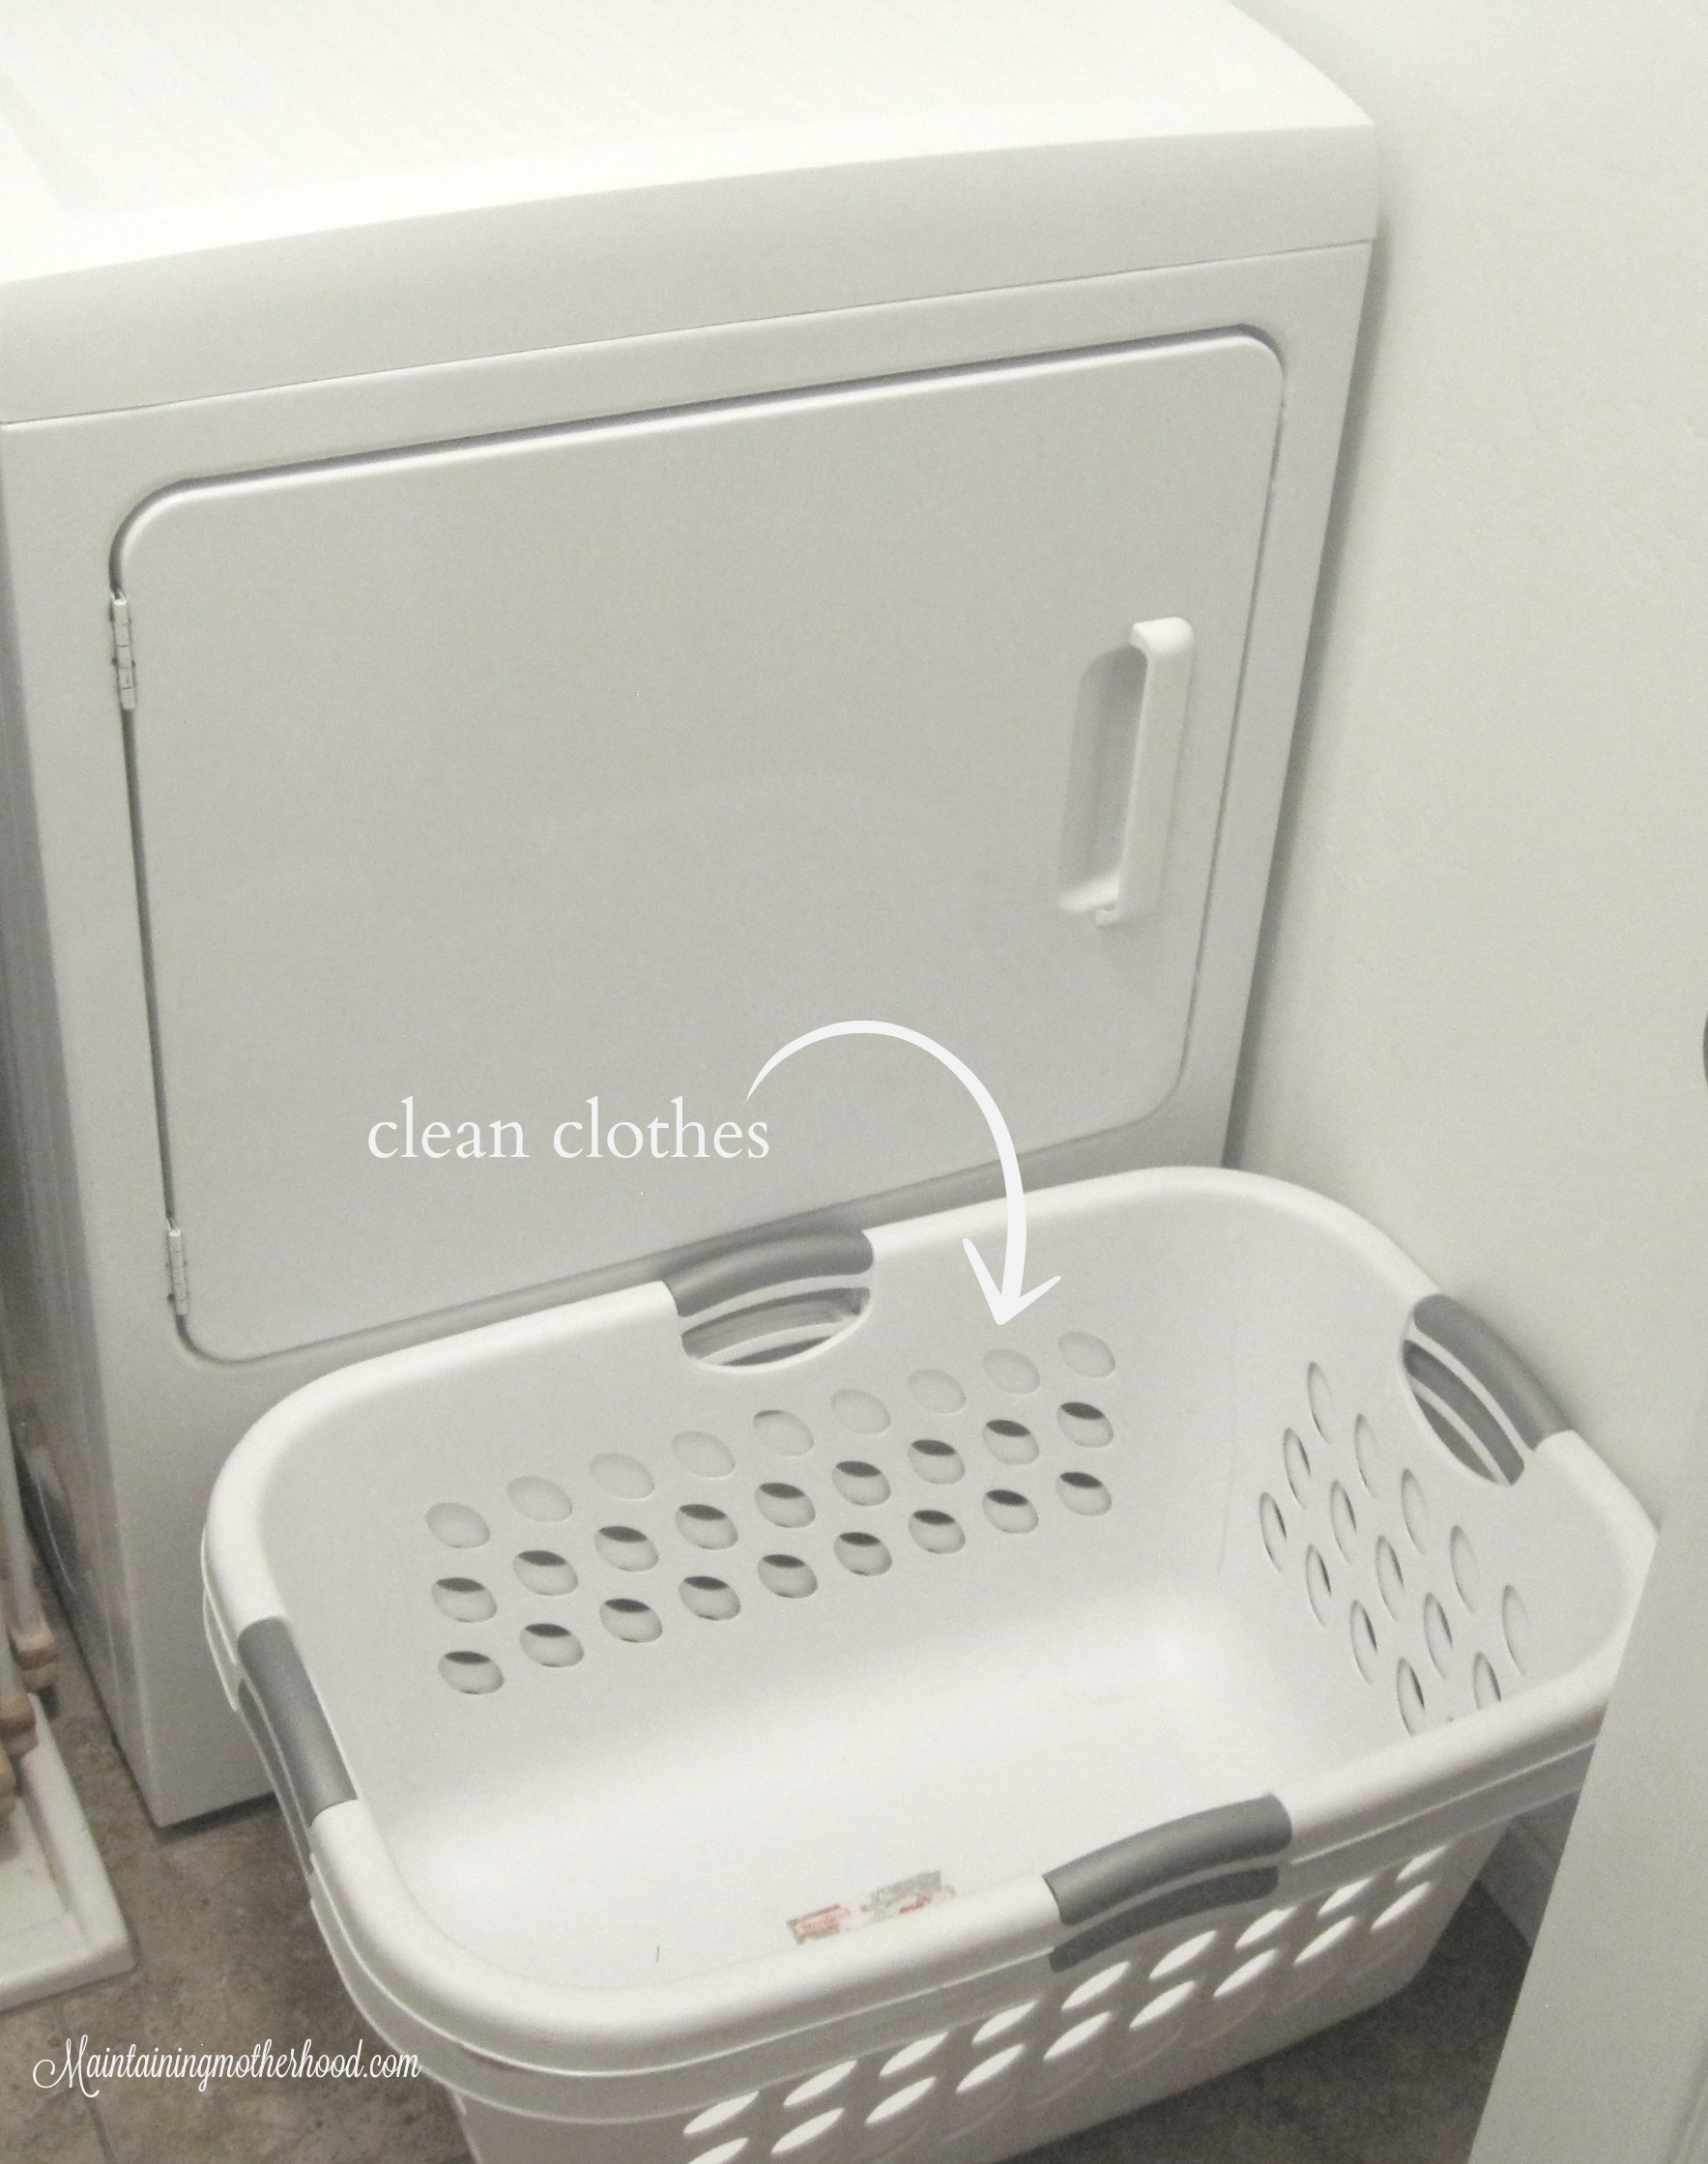 Although laundry is a never-ending task, it doesn't have to be an overwhelming task. I have a system that works great, and I want to share it with you!